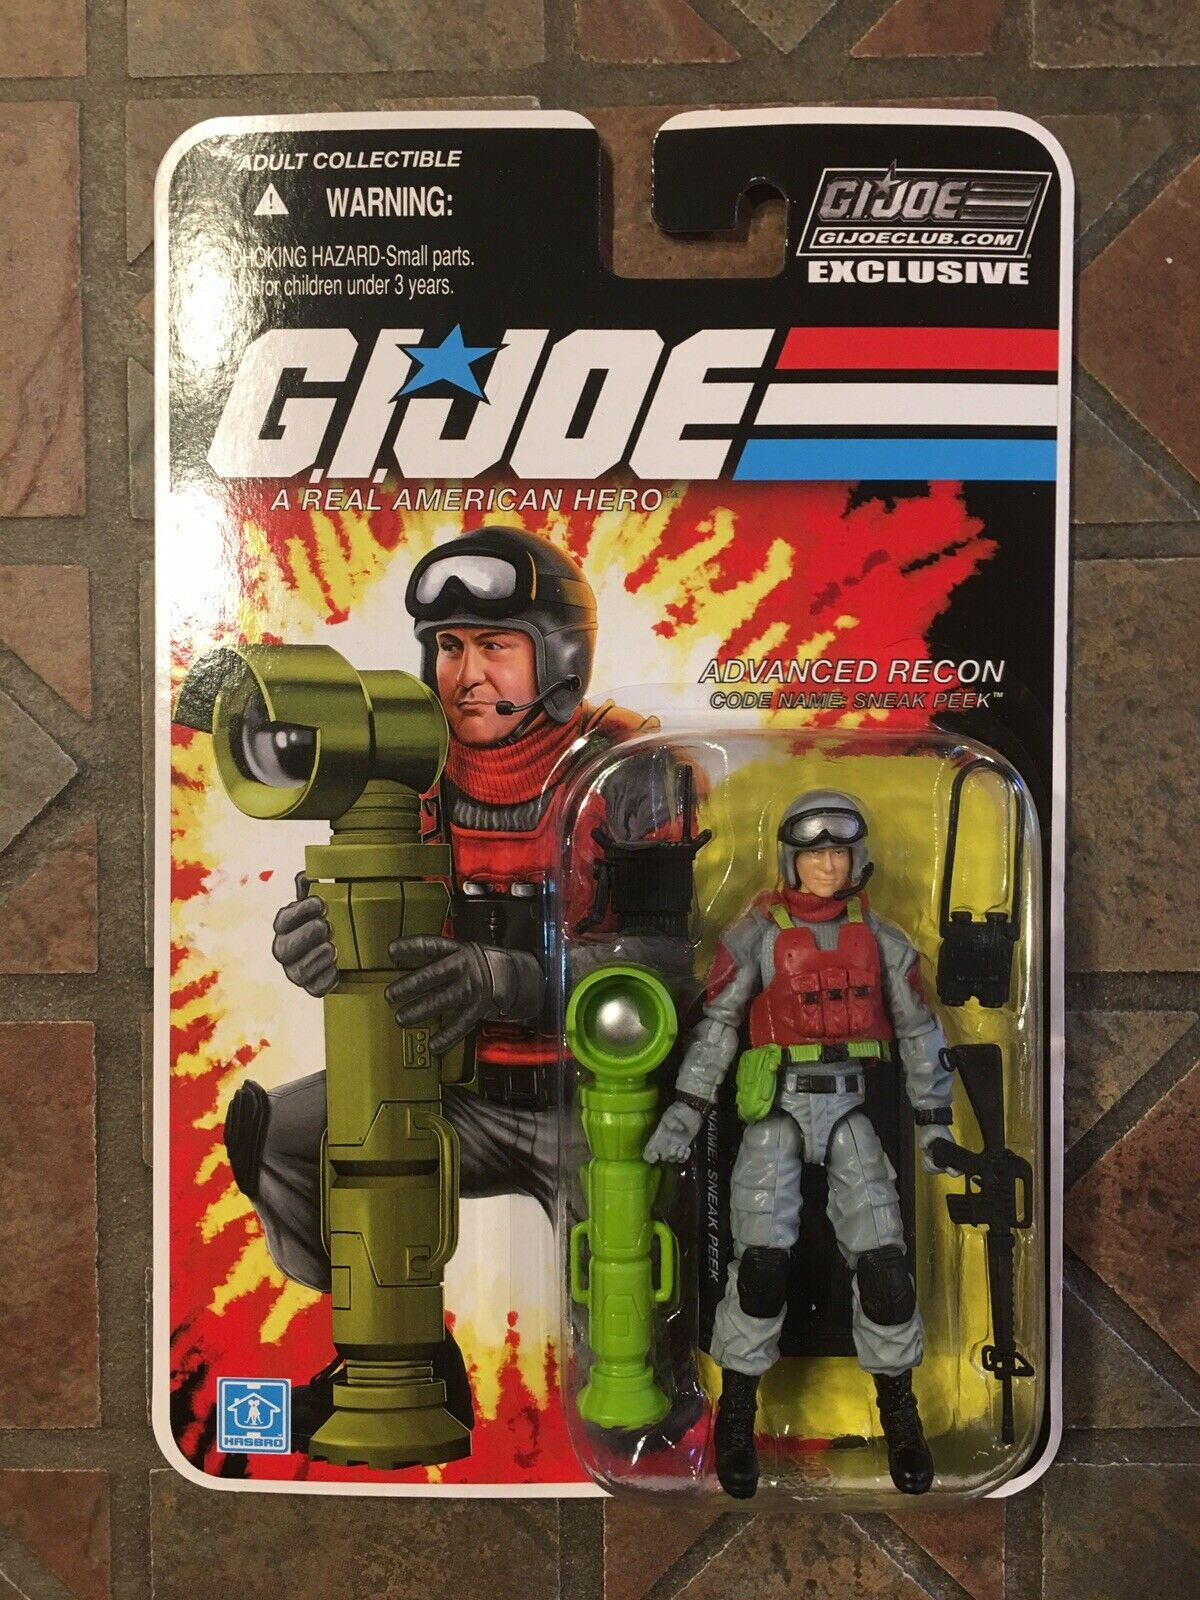 Gi Joe Sneak Gucken Fss 5.0 Con Collectors Club Exclusive Figur 2017 Cobra